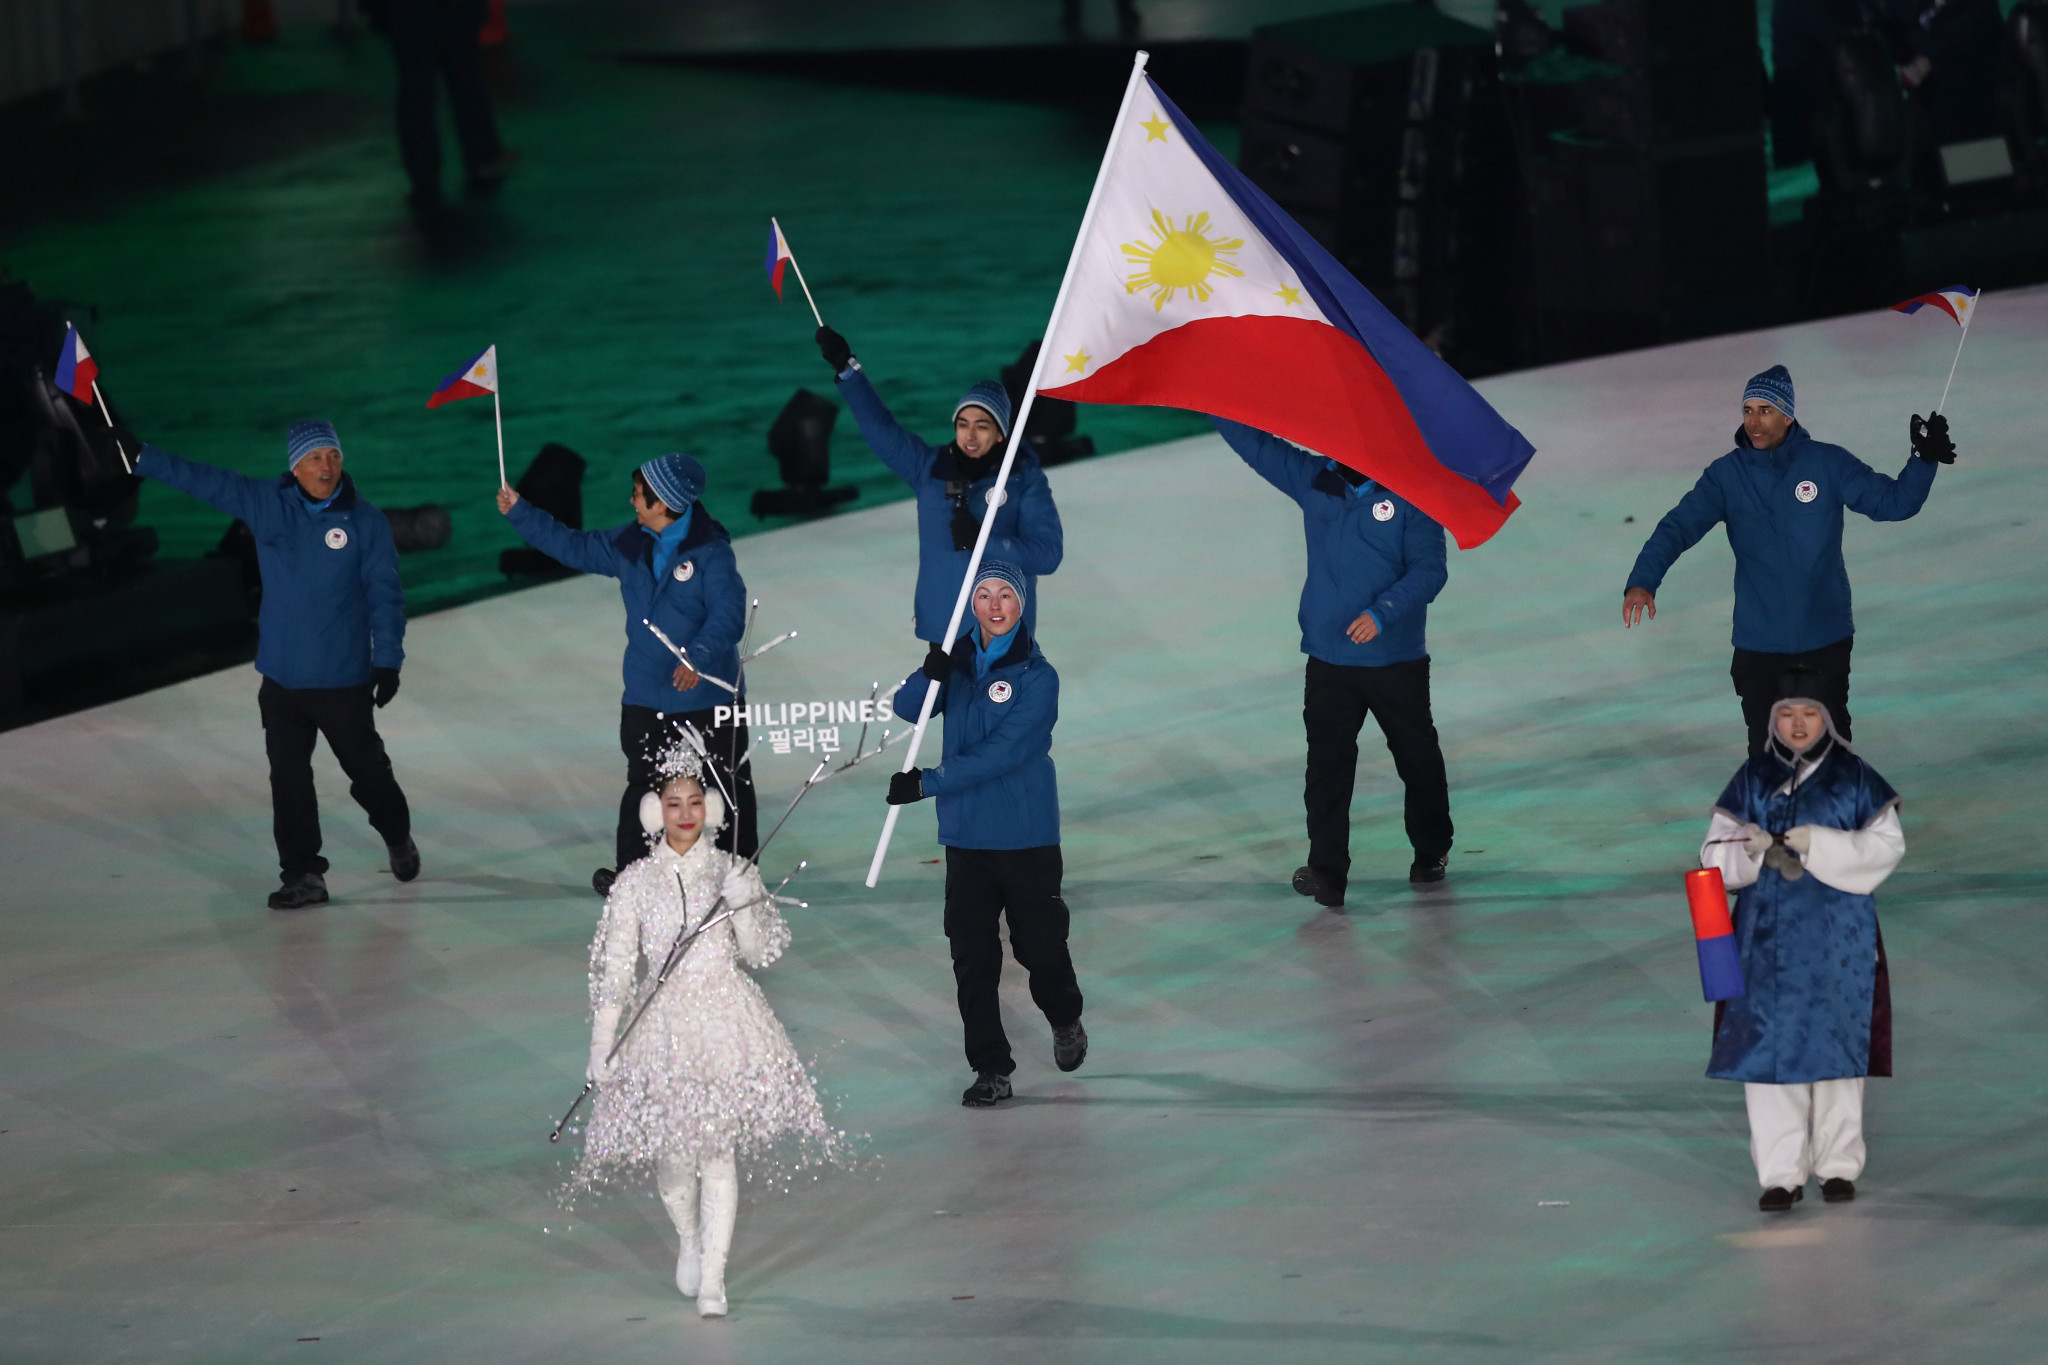 Philippine Olympic Committee calls elections after IOC and OCA urge body to resolve issues